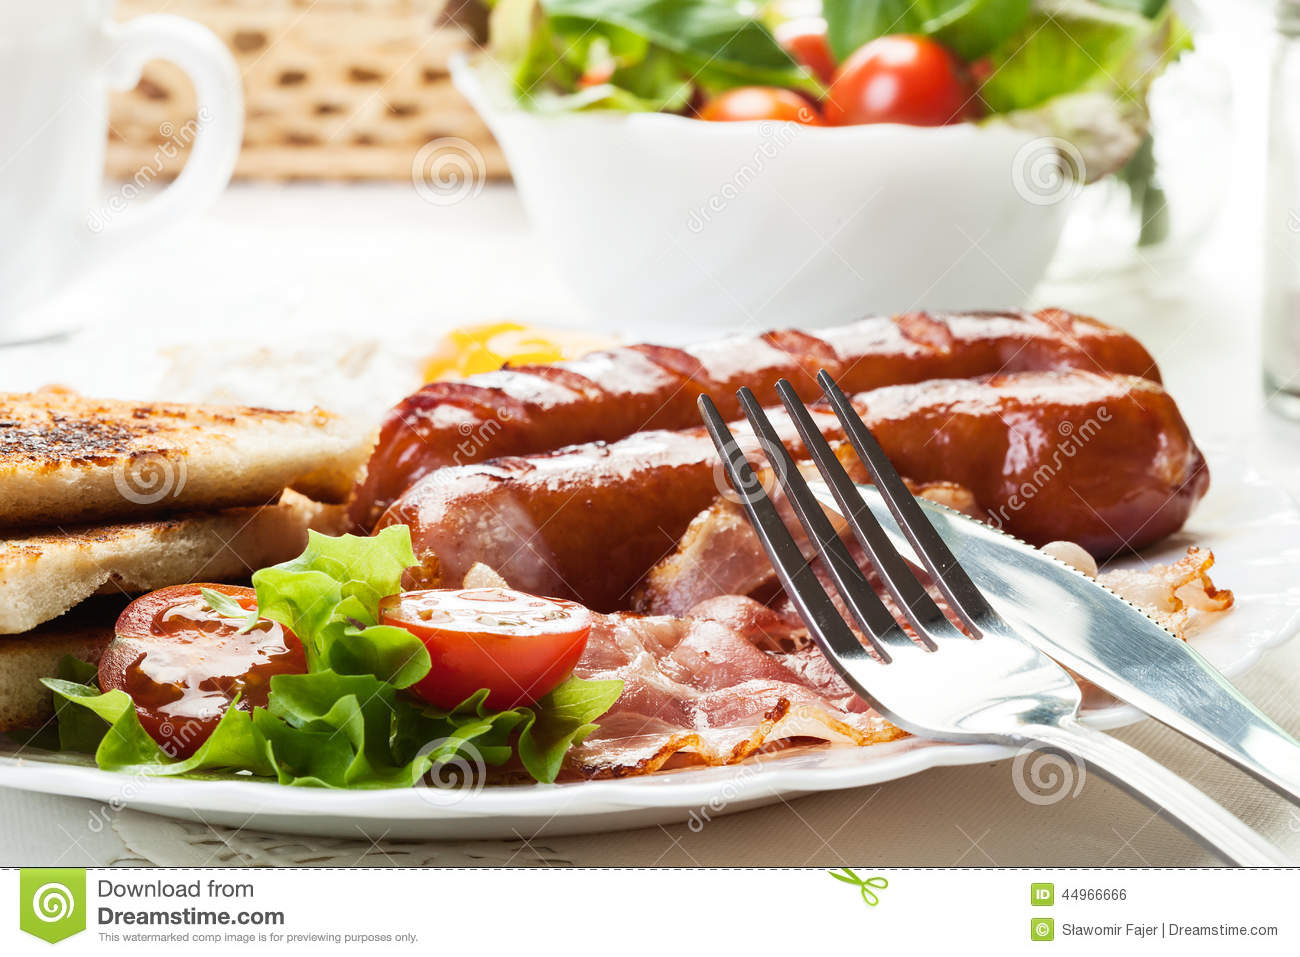 how to cook english breakfast sausage